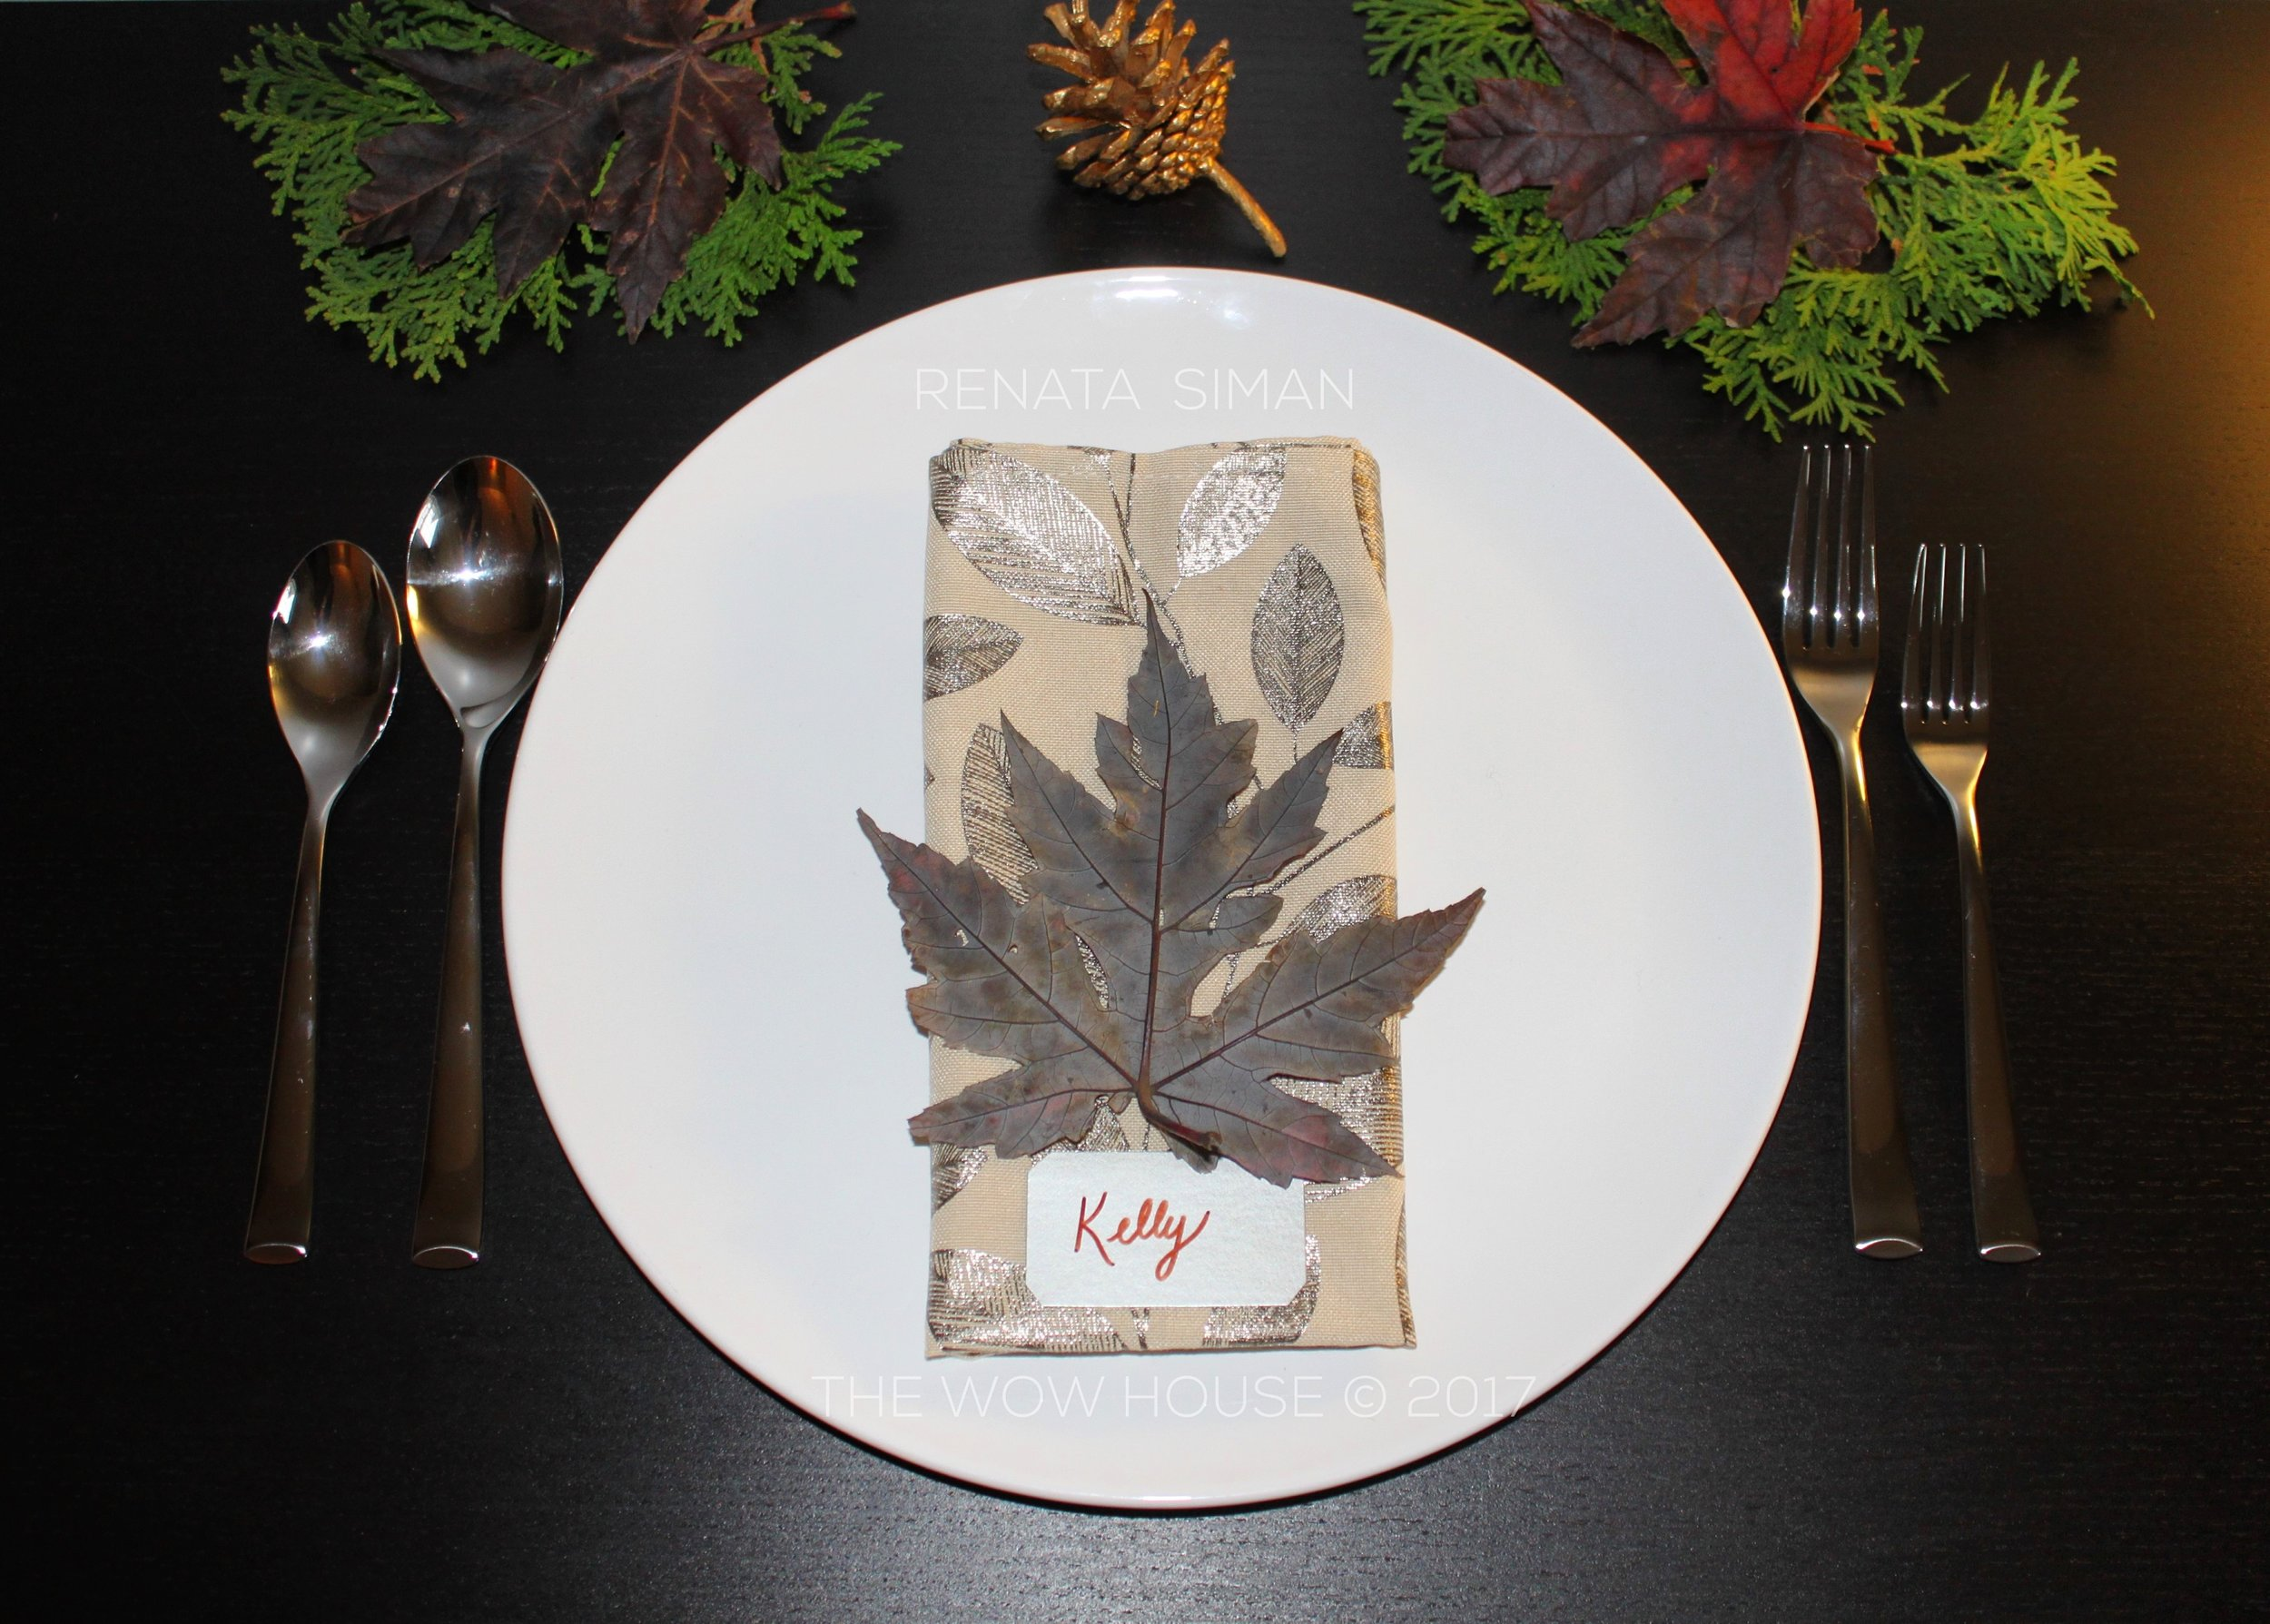 For a place setting with TRADITIONAL vibe I created this look. A little more shine if you will - a little more pewter and gold tones. MODERN-TRADITIONAL